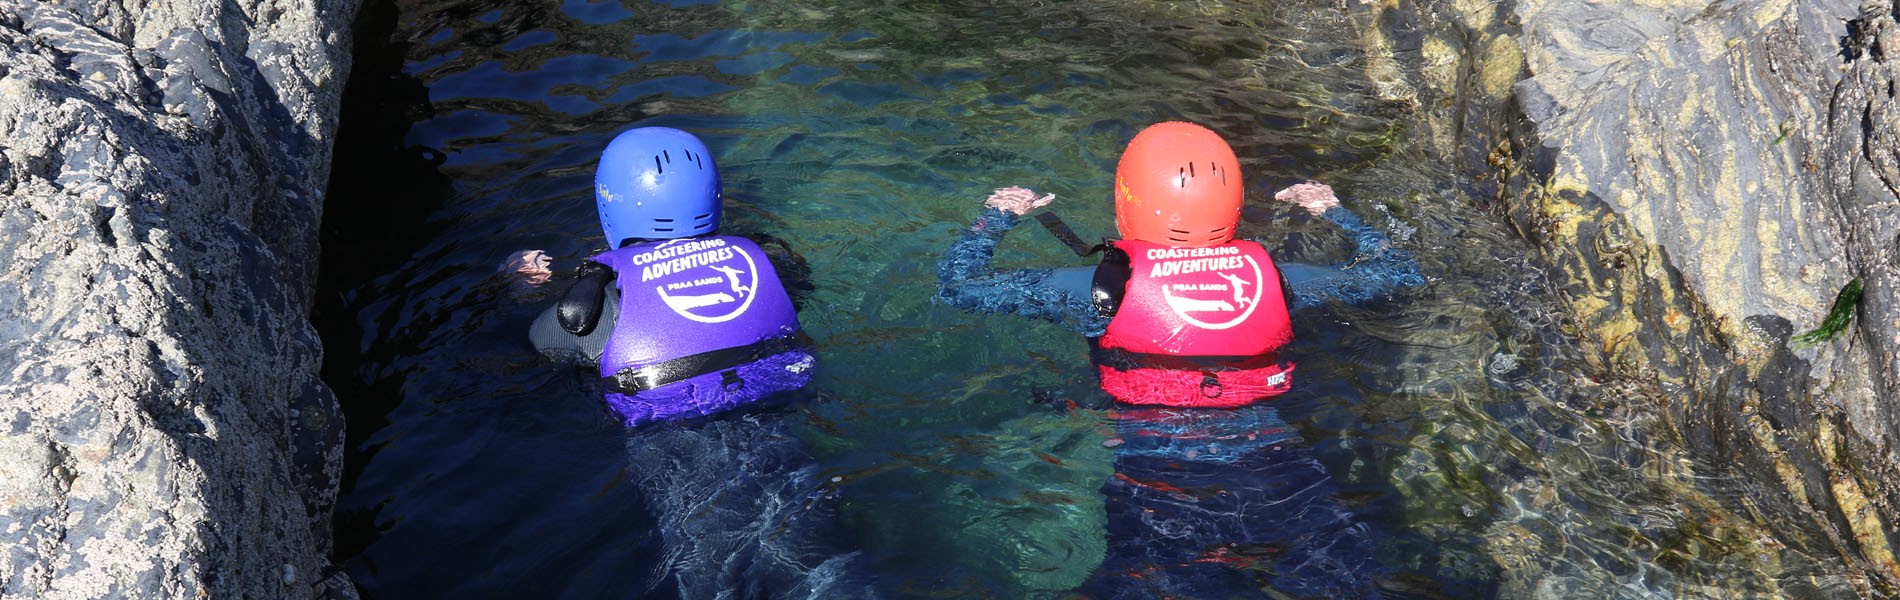 About the team at Coasteering Adventures, Praa Sands